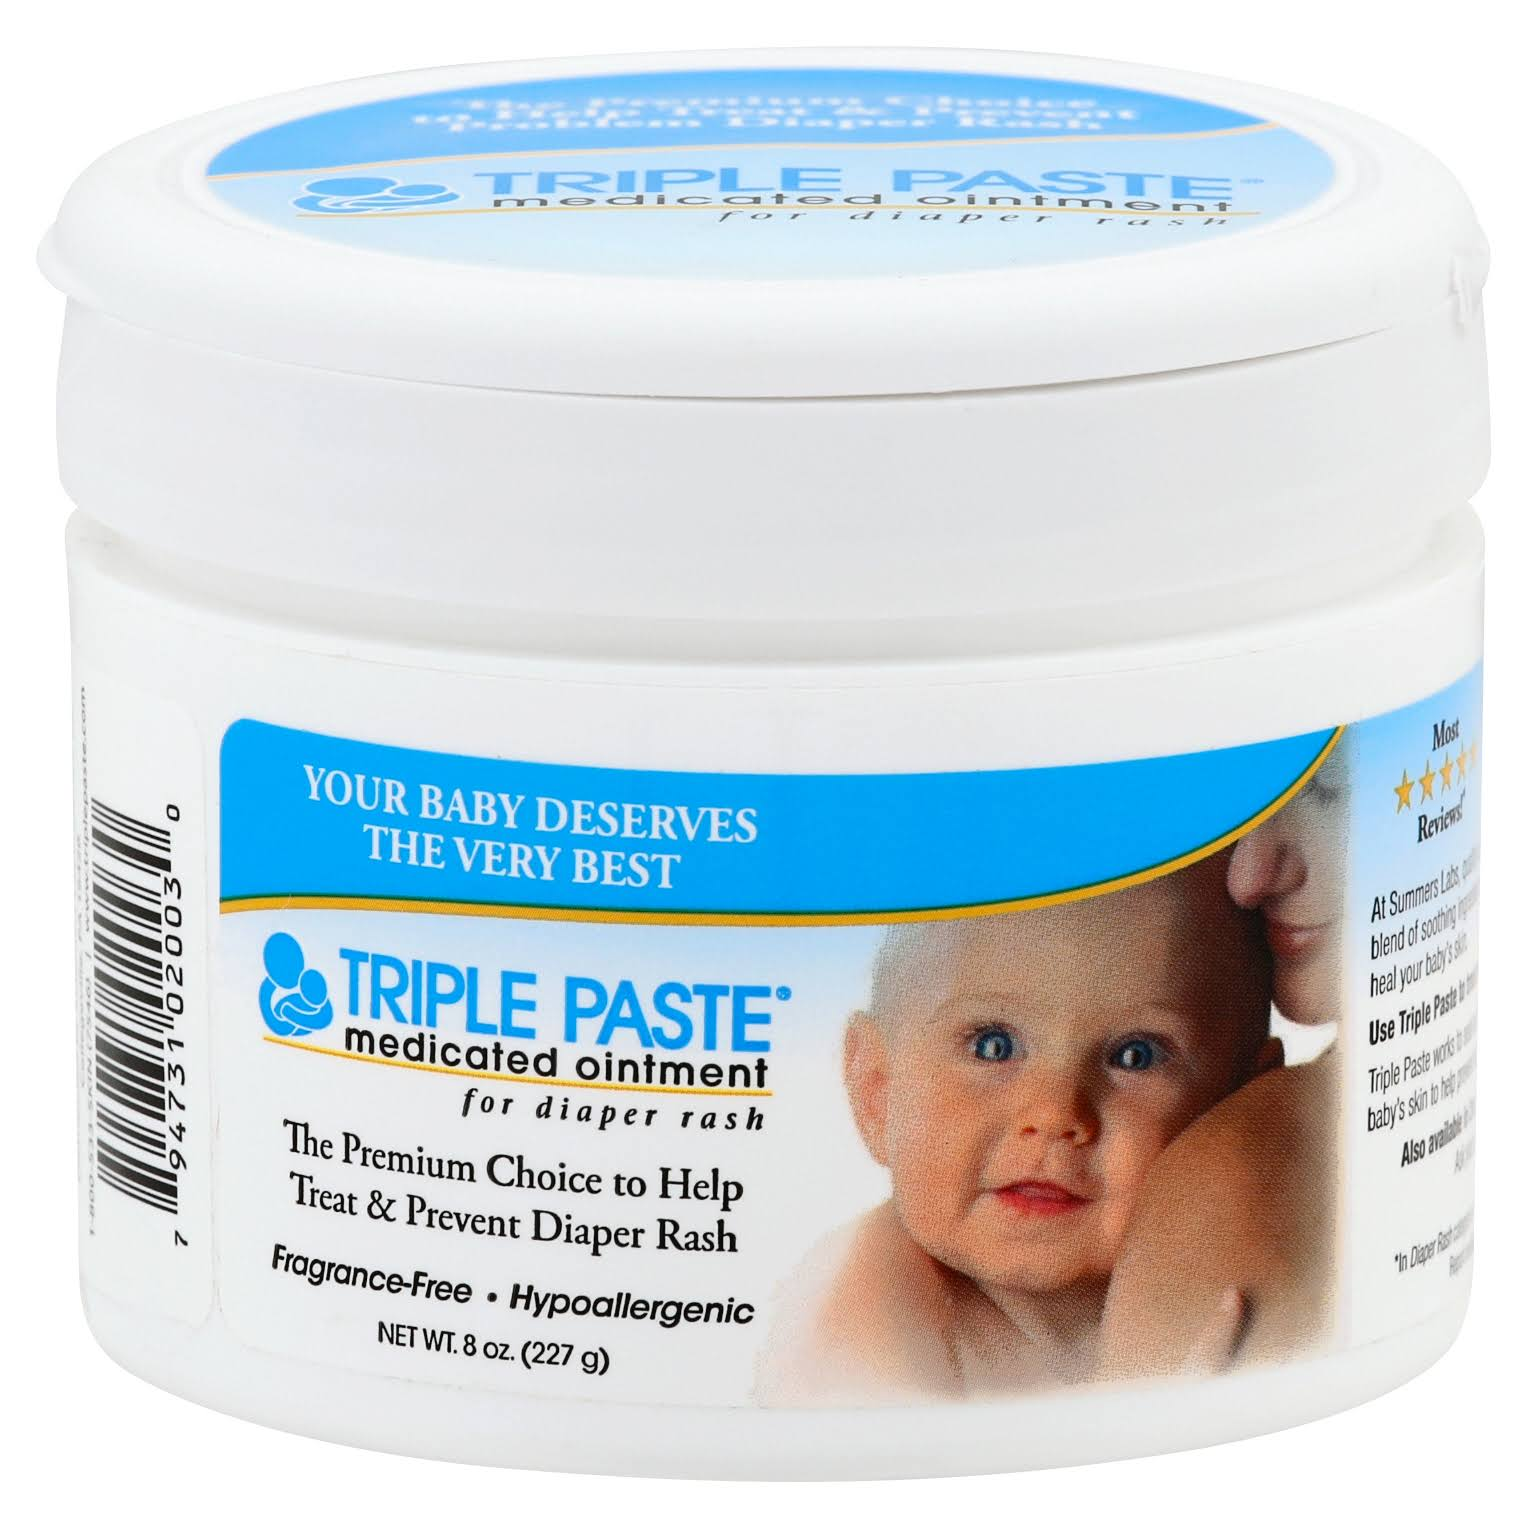 Triple Paste Medicated Ointment for Diaper Rash - 8oz